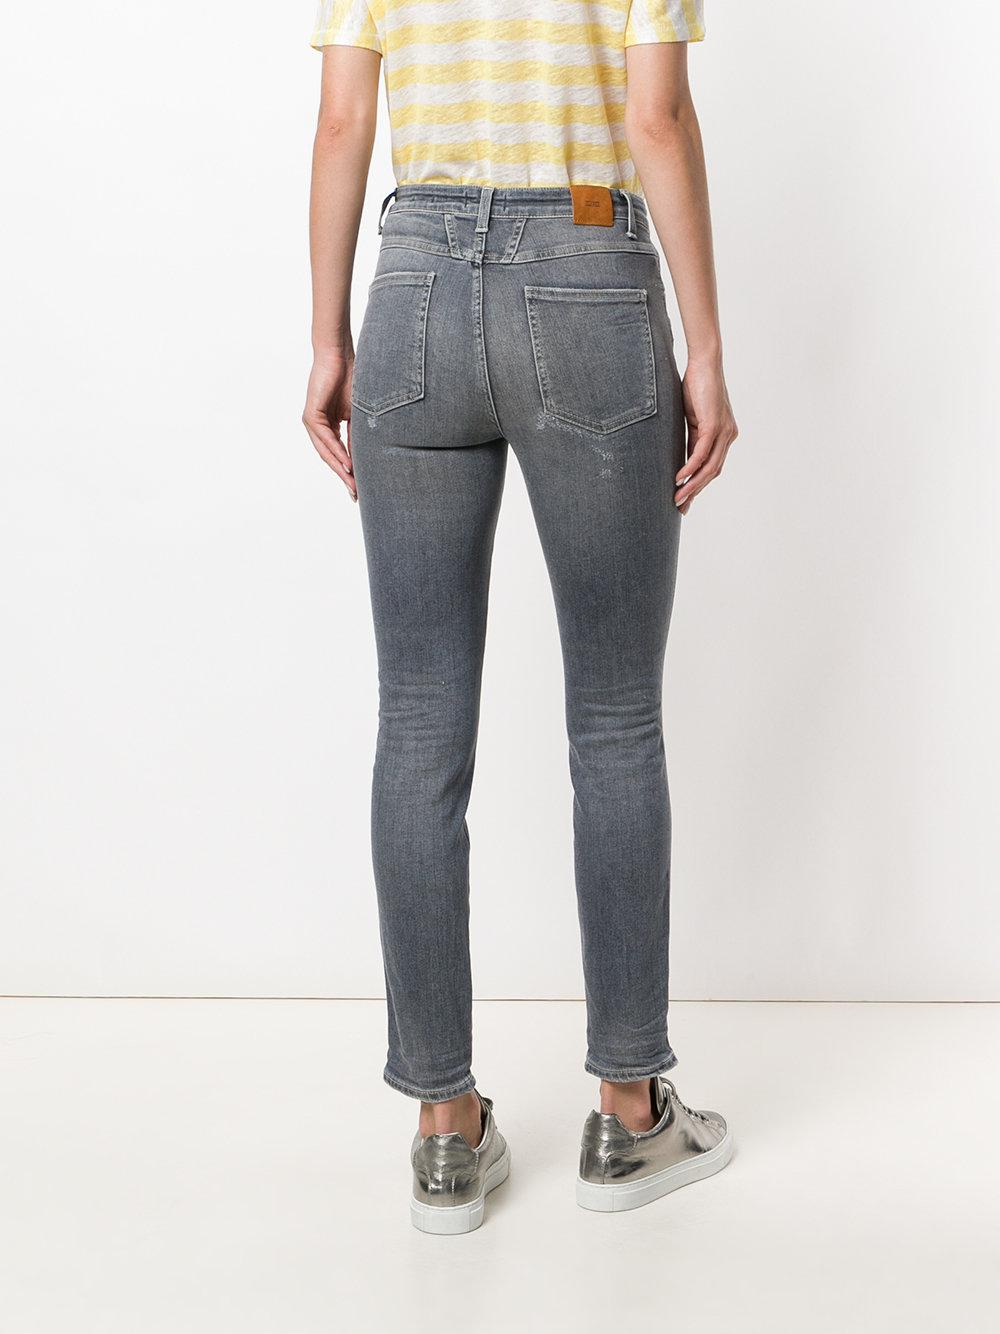 Closed Denim Distressed Skinny Jeans in Grey (Grey)